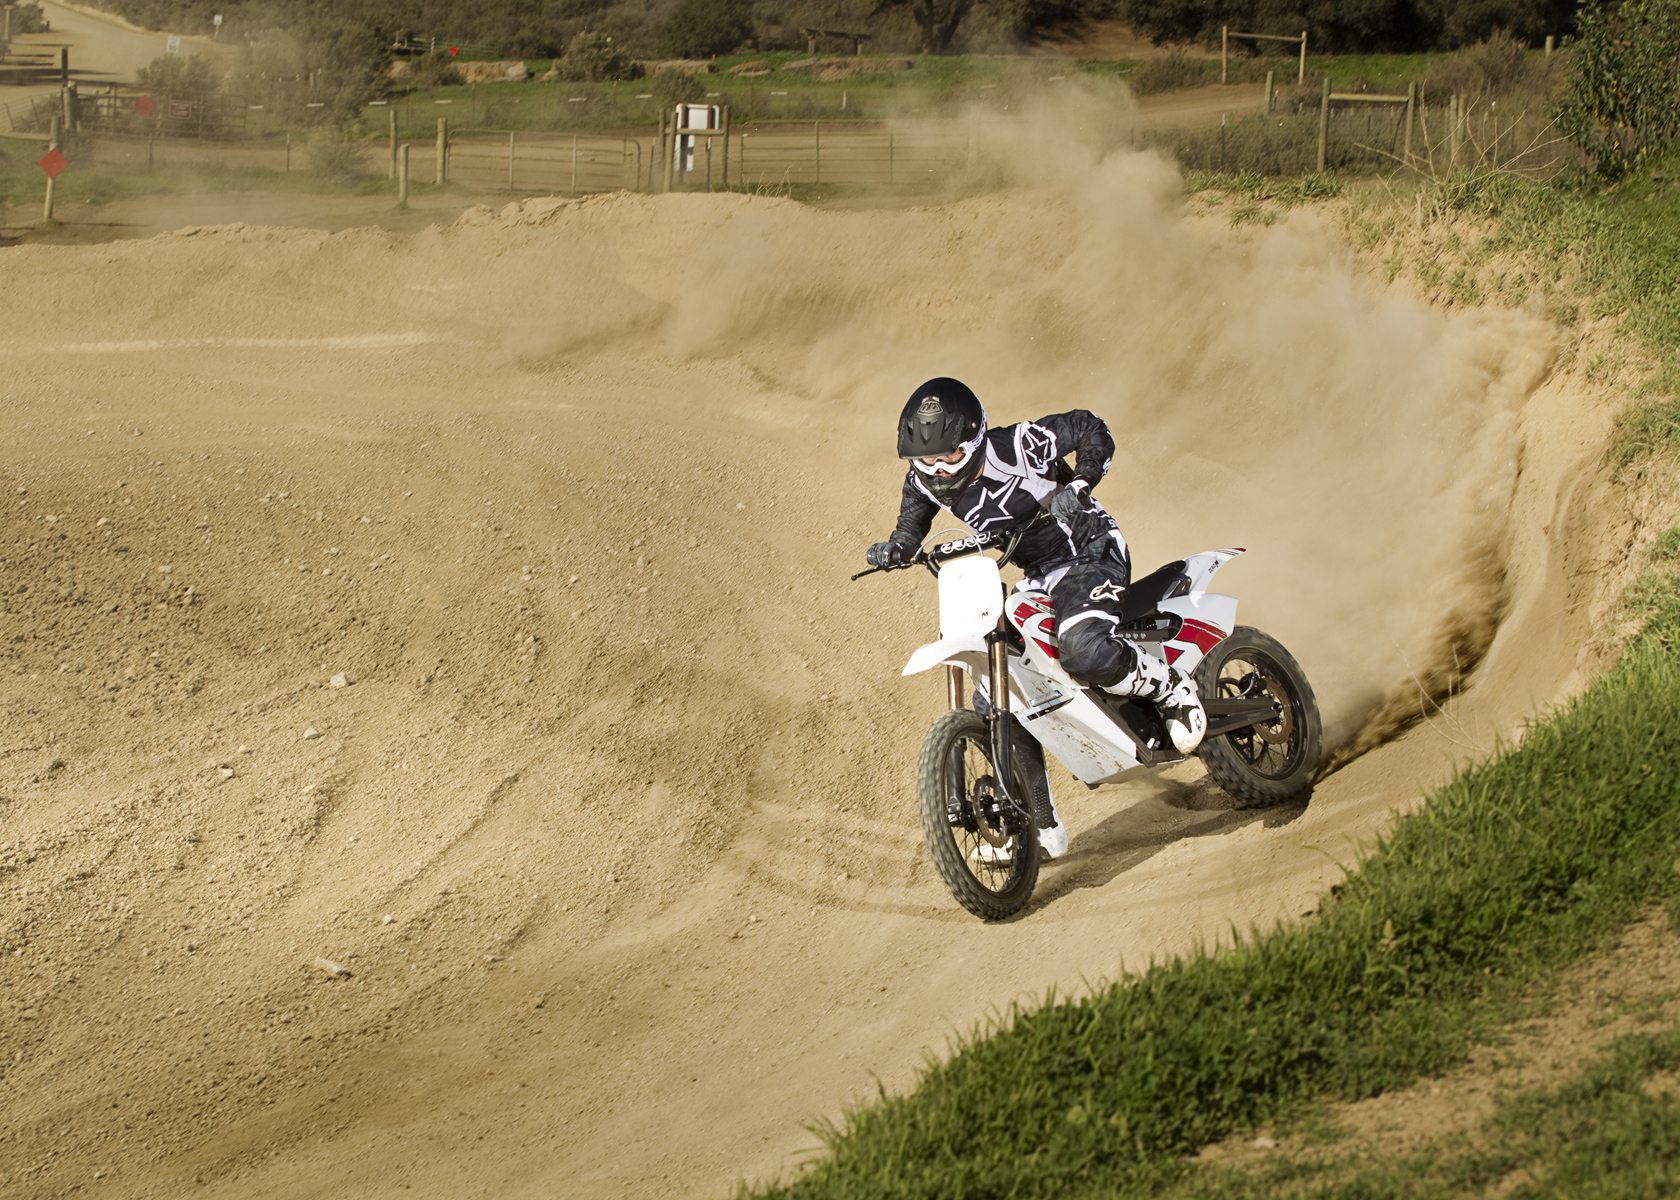 '.2011 Zero MX Electric Motorcycle: Turn on Track, Foot Down.'